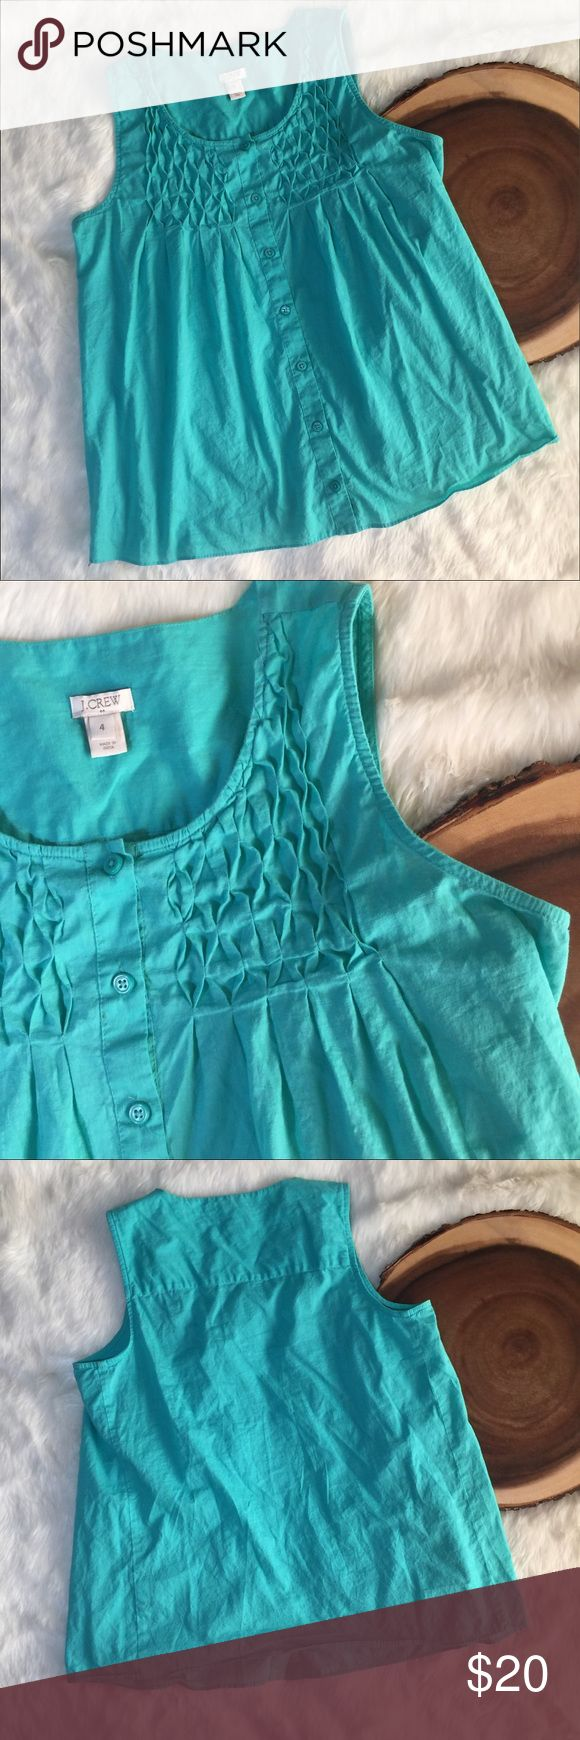 "J Crew Turquoise Retro Rockabilly Tunic Linen styl 18.5"" underarm to underarm  24"" top to bottom Linen like 💯% cotton top  All items photographed immediately prior to packing for shipping   Expect to receive a well-packed item! It may not be pretty packing but I like to use upcycled material & make sure it gets to you without being affected by the elements for you to enjoy asap! J. Crew Tops Blouses"